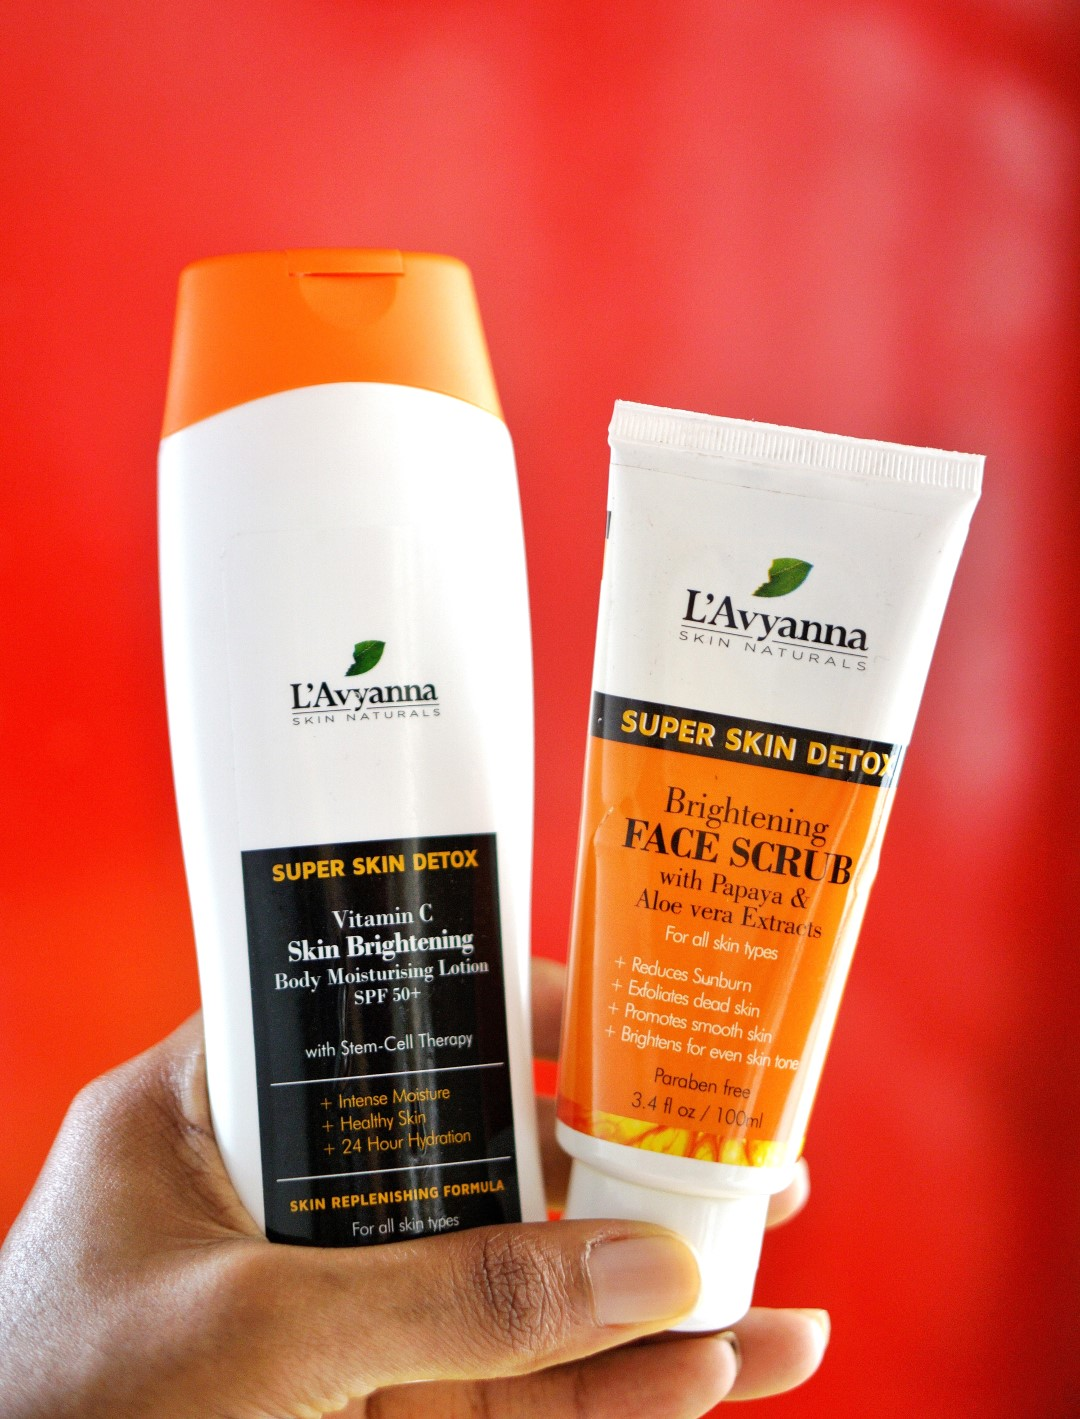 L'avyanna naturals products - super skin detox vitamin C lotion and face scrub